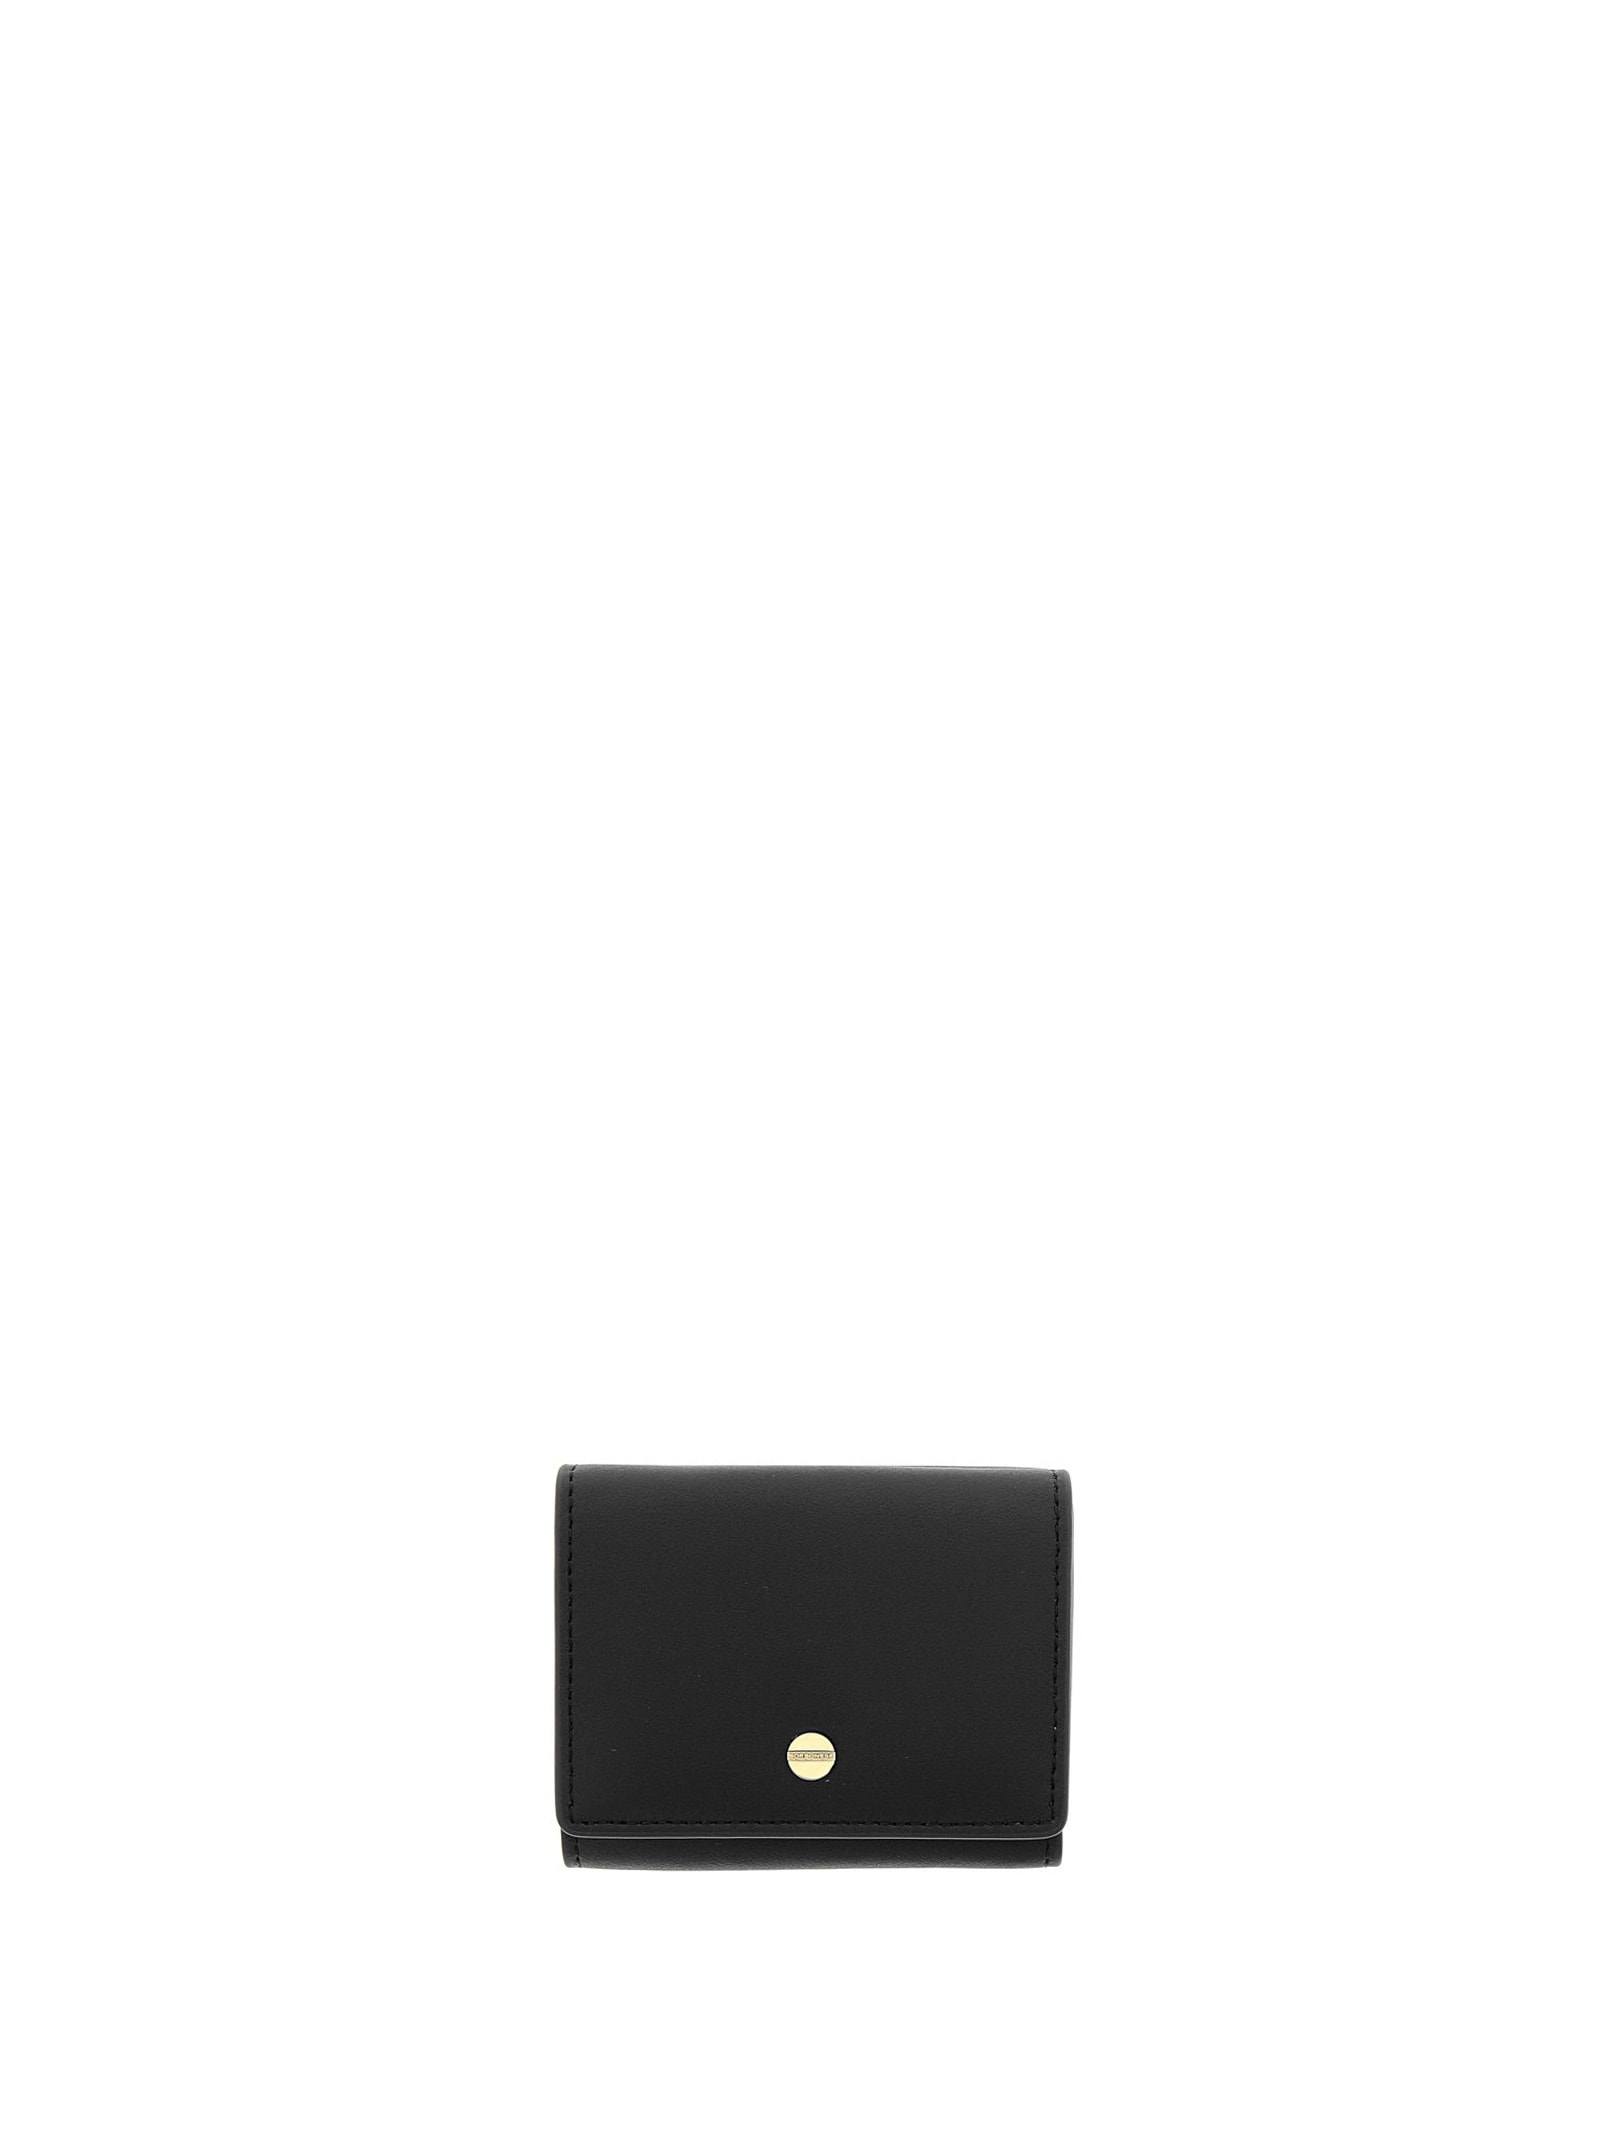 Borbonese SMALL BLACK WALLET